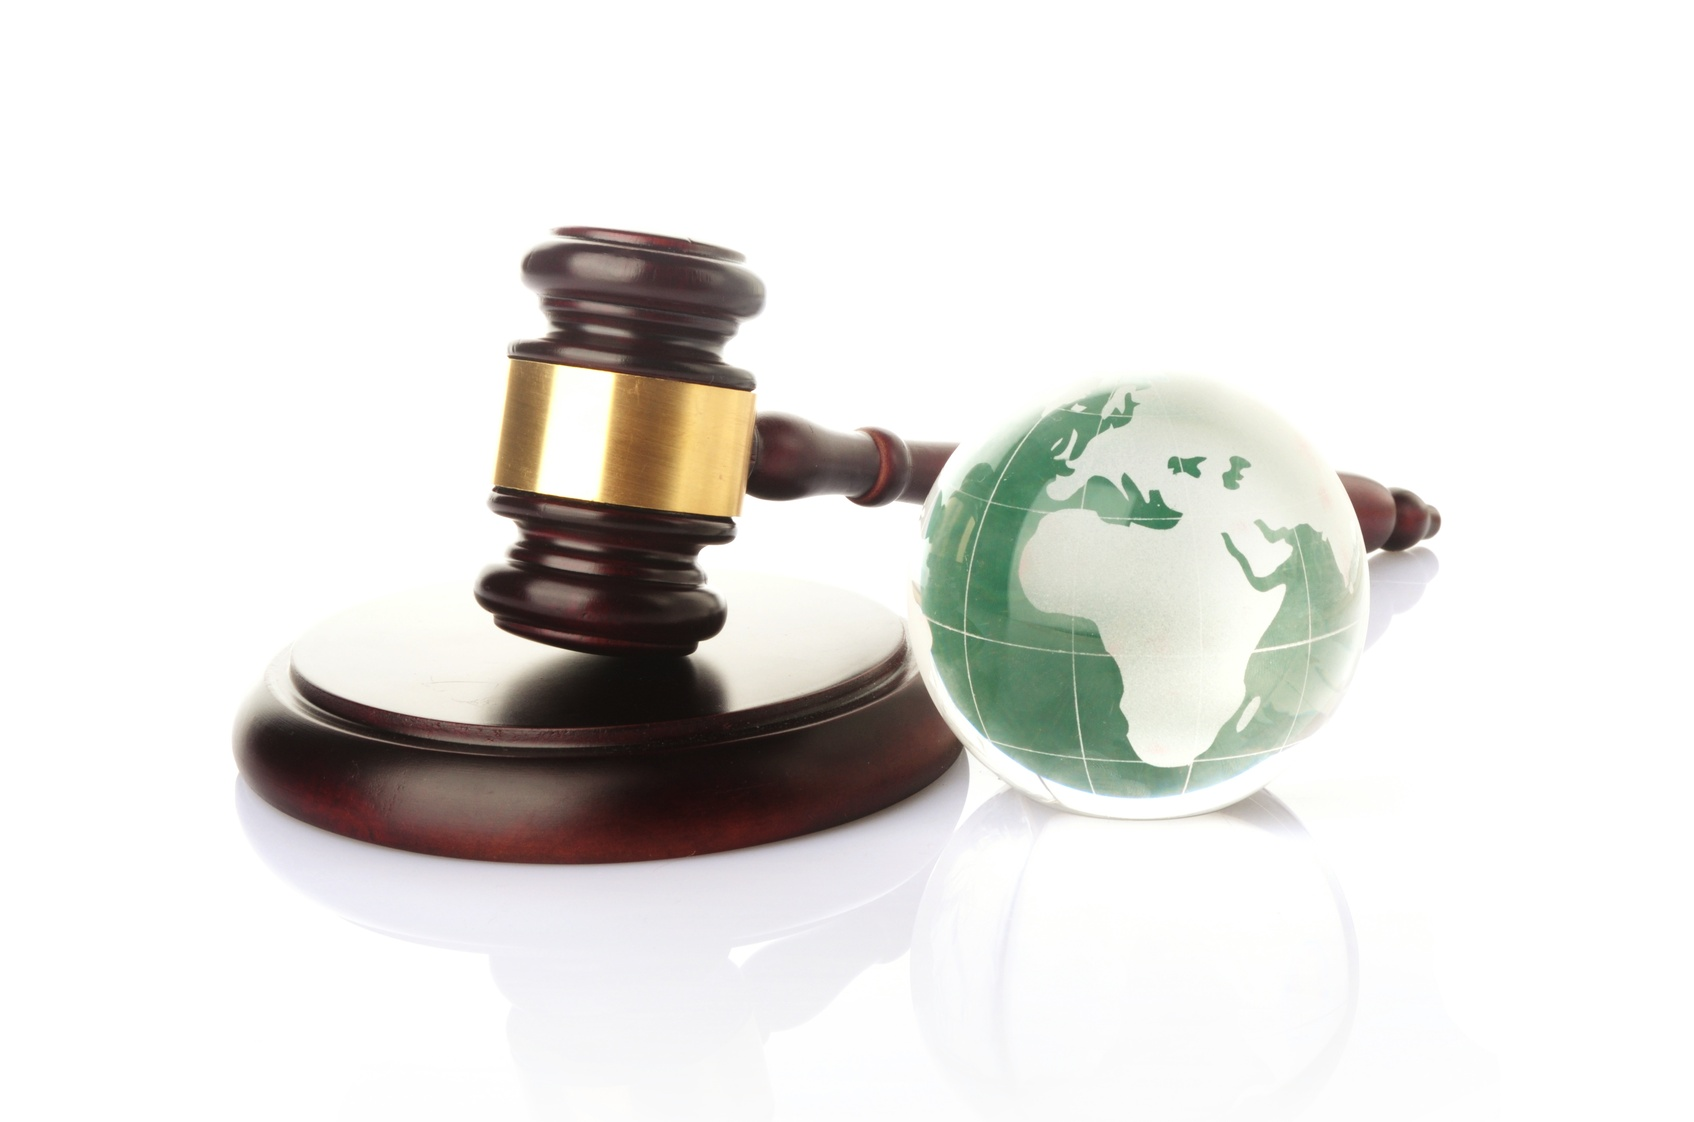 international and domestic arbitration